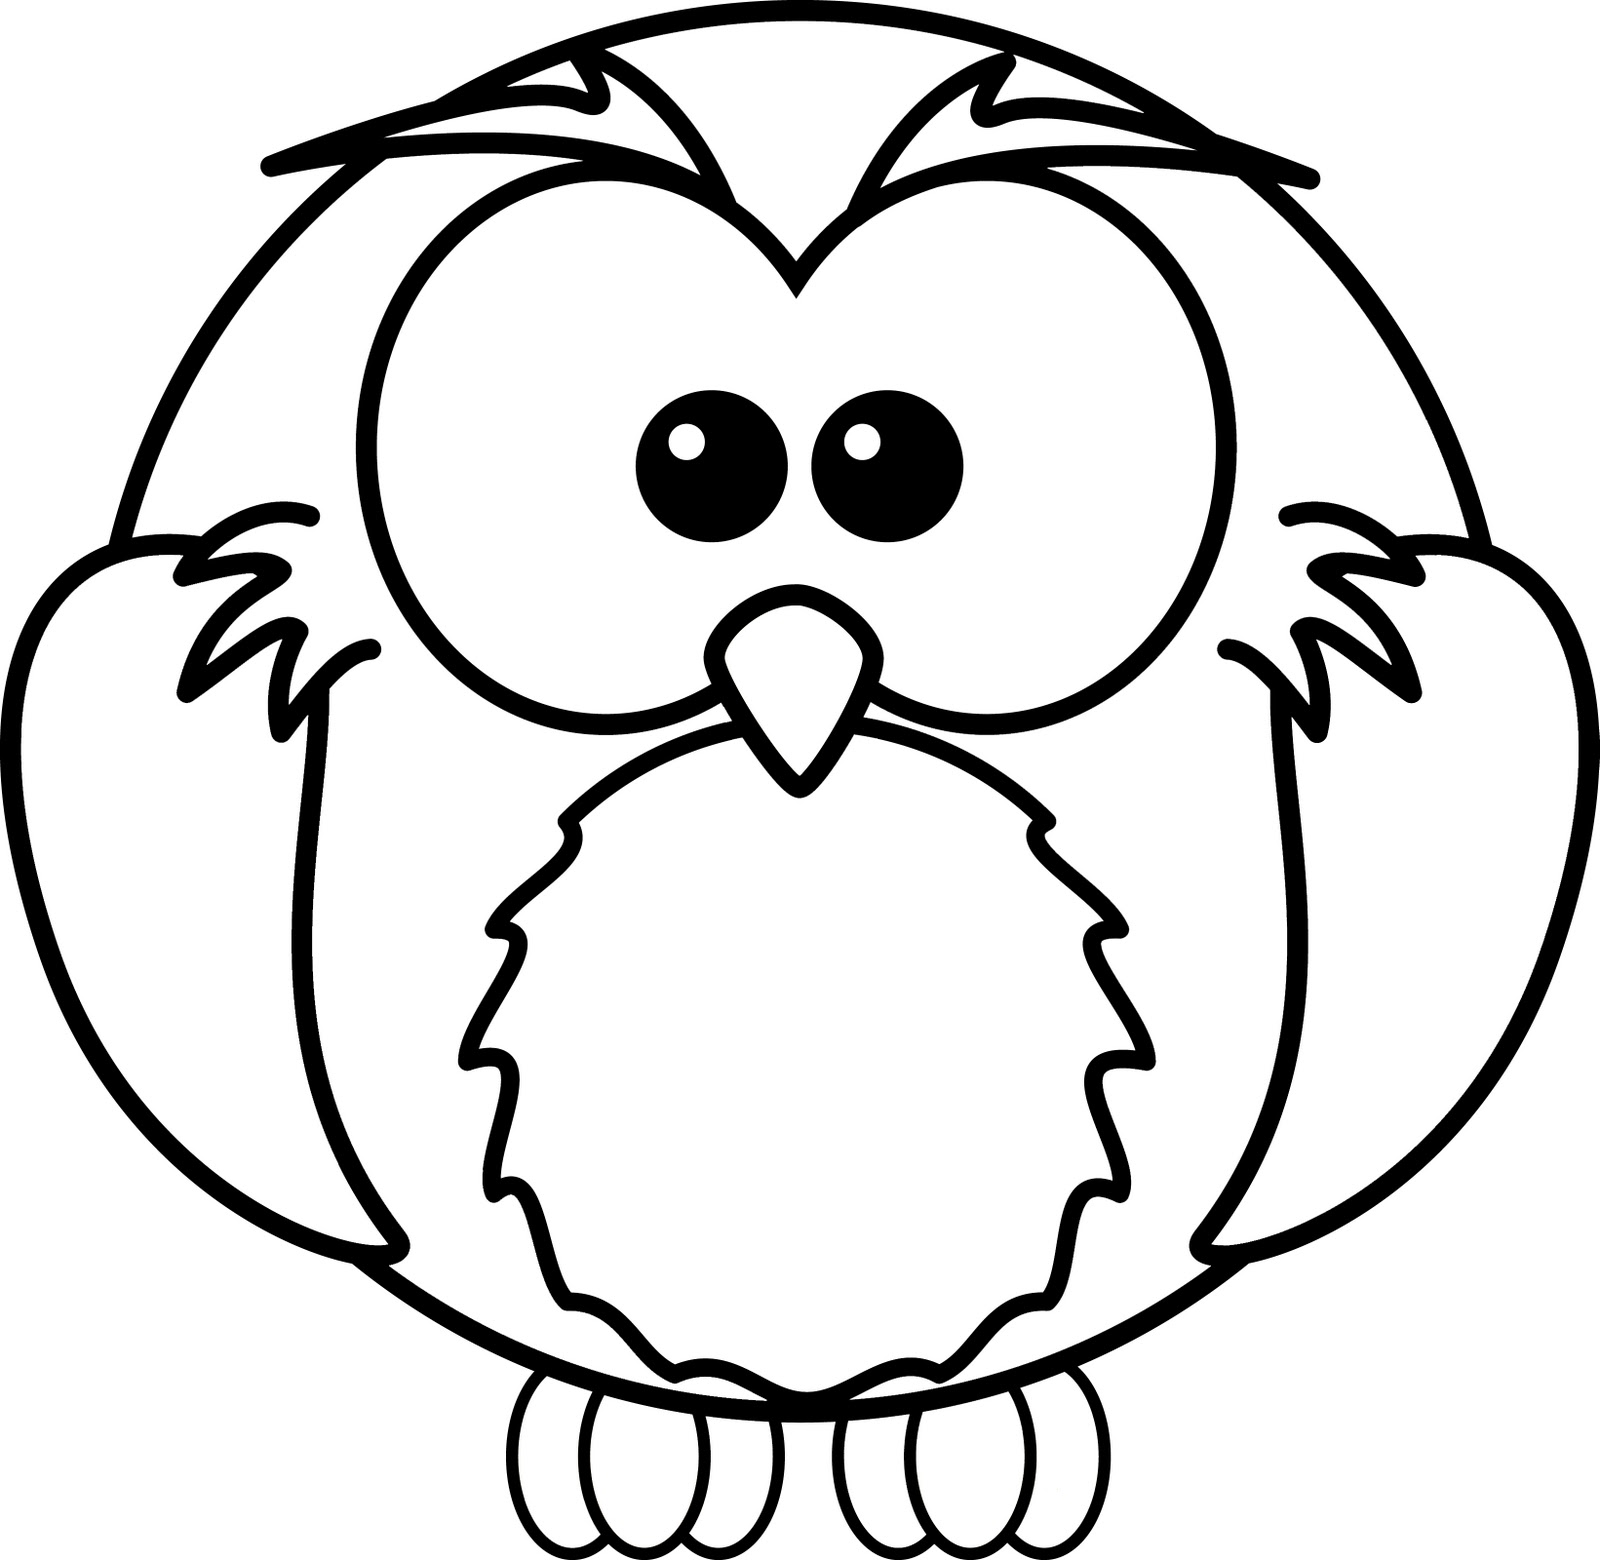 free printable coloring pages of owls free owl printables that are handy barrett website coloring printable pages owls free of